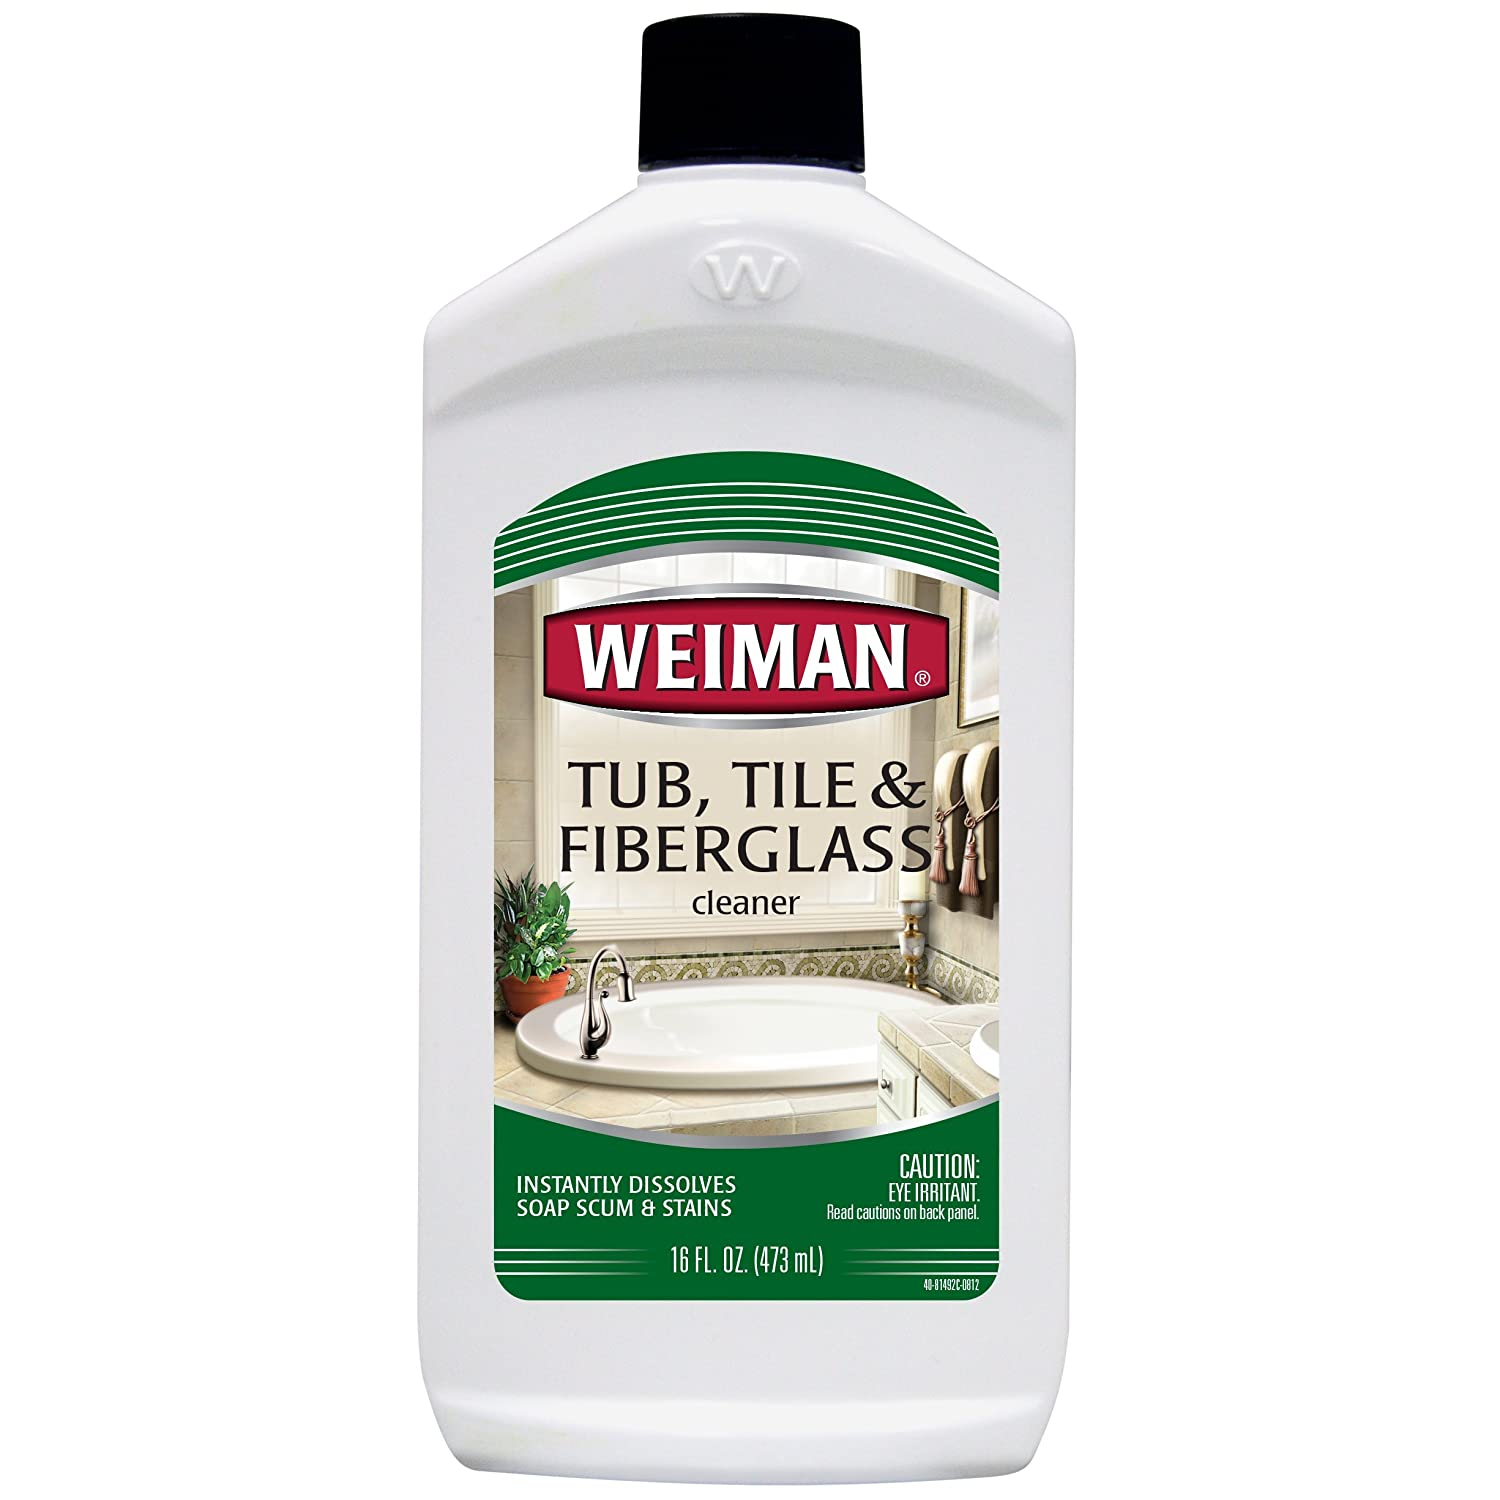 Weiman Fiberglass Cleaner for Bathrooms, 16-Ounce Bottle 40